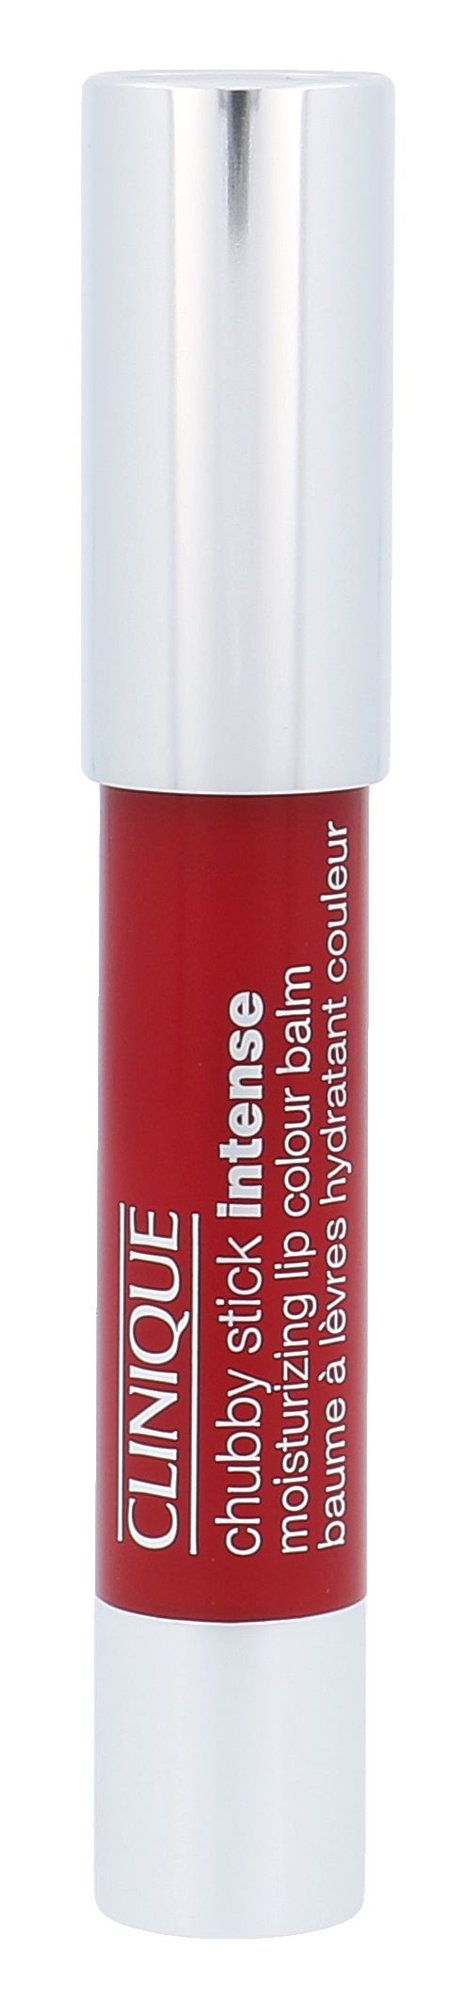 Clinique Chubby Stick Cosmetic 3ml 03 Mightiest Maraschino Intense